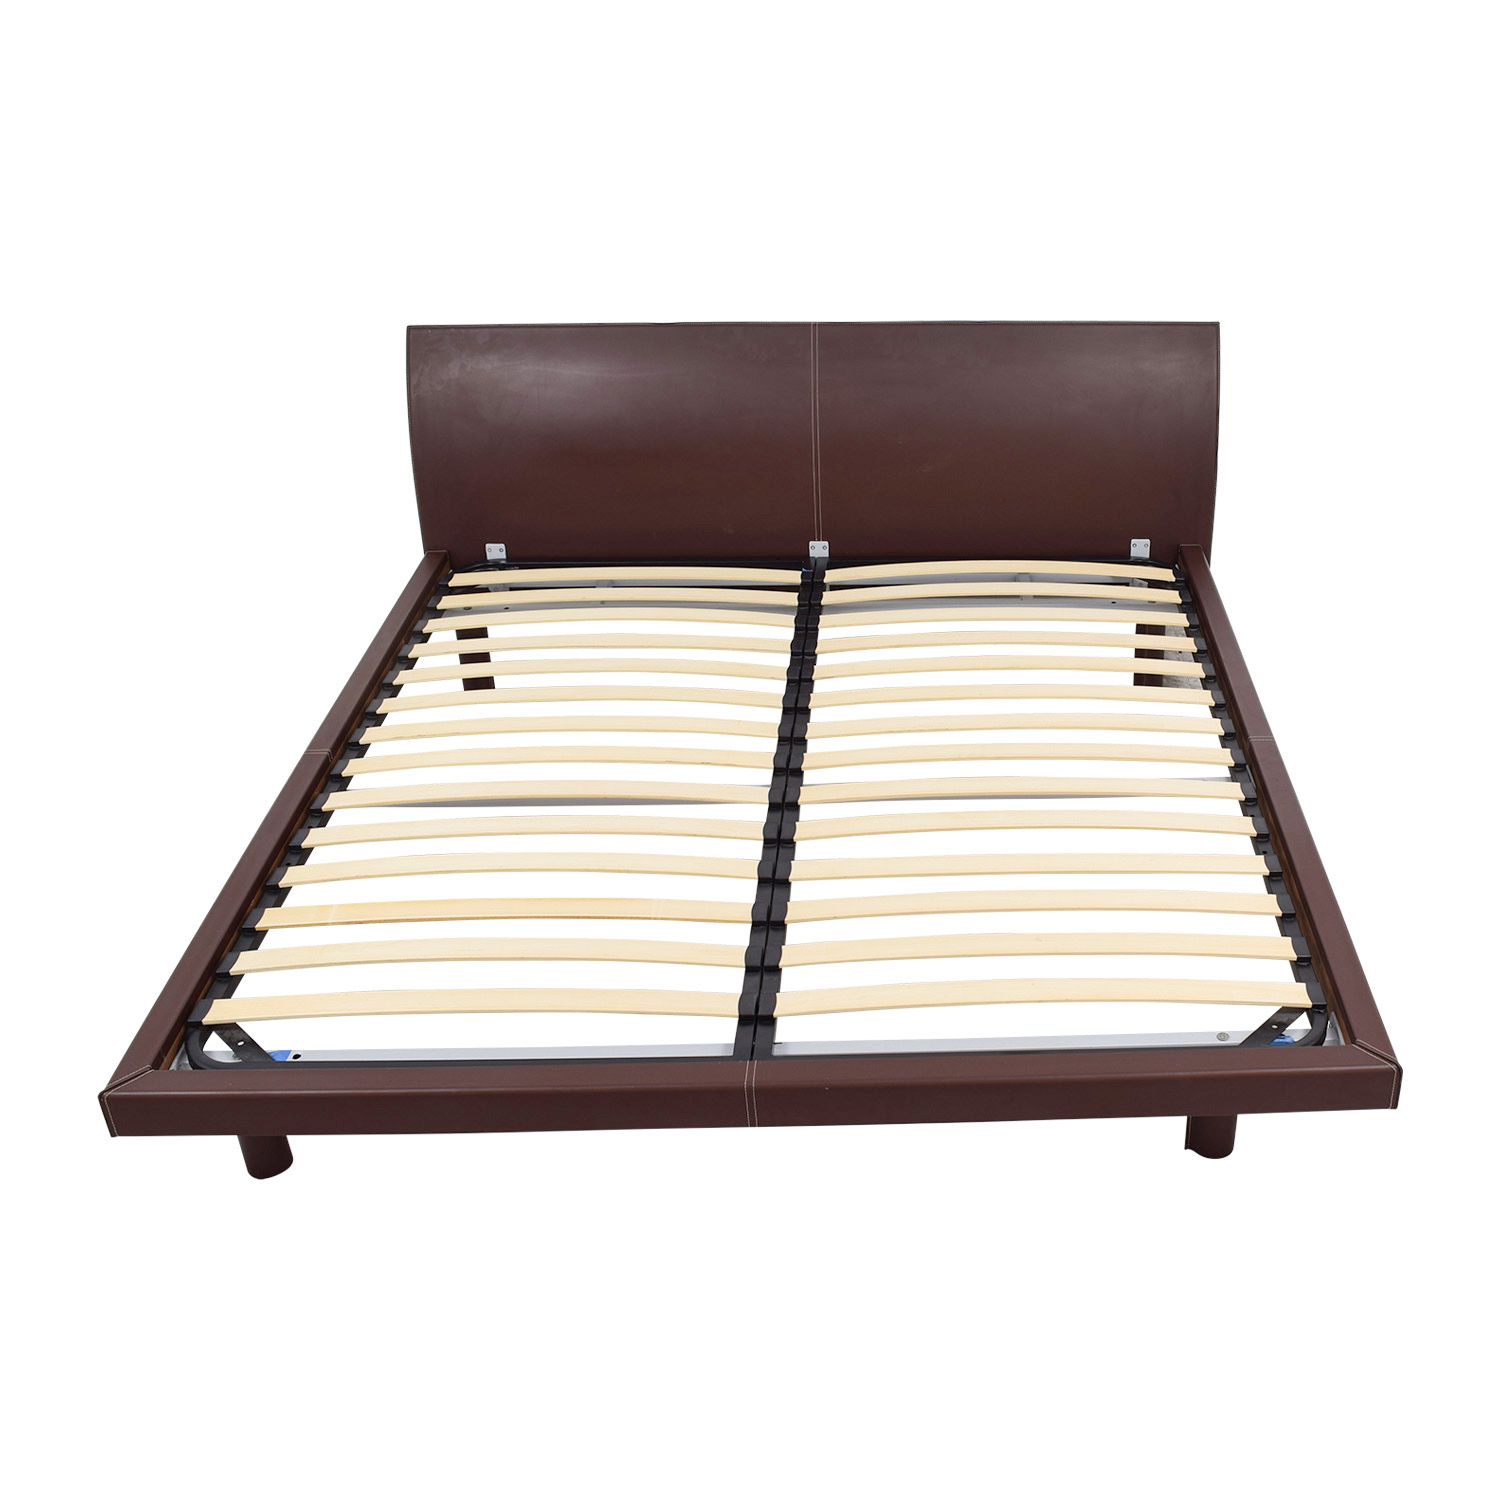 shop Calligaris Concorde Leather King Bed Calligaris Bed Frames